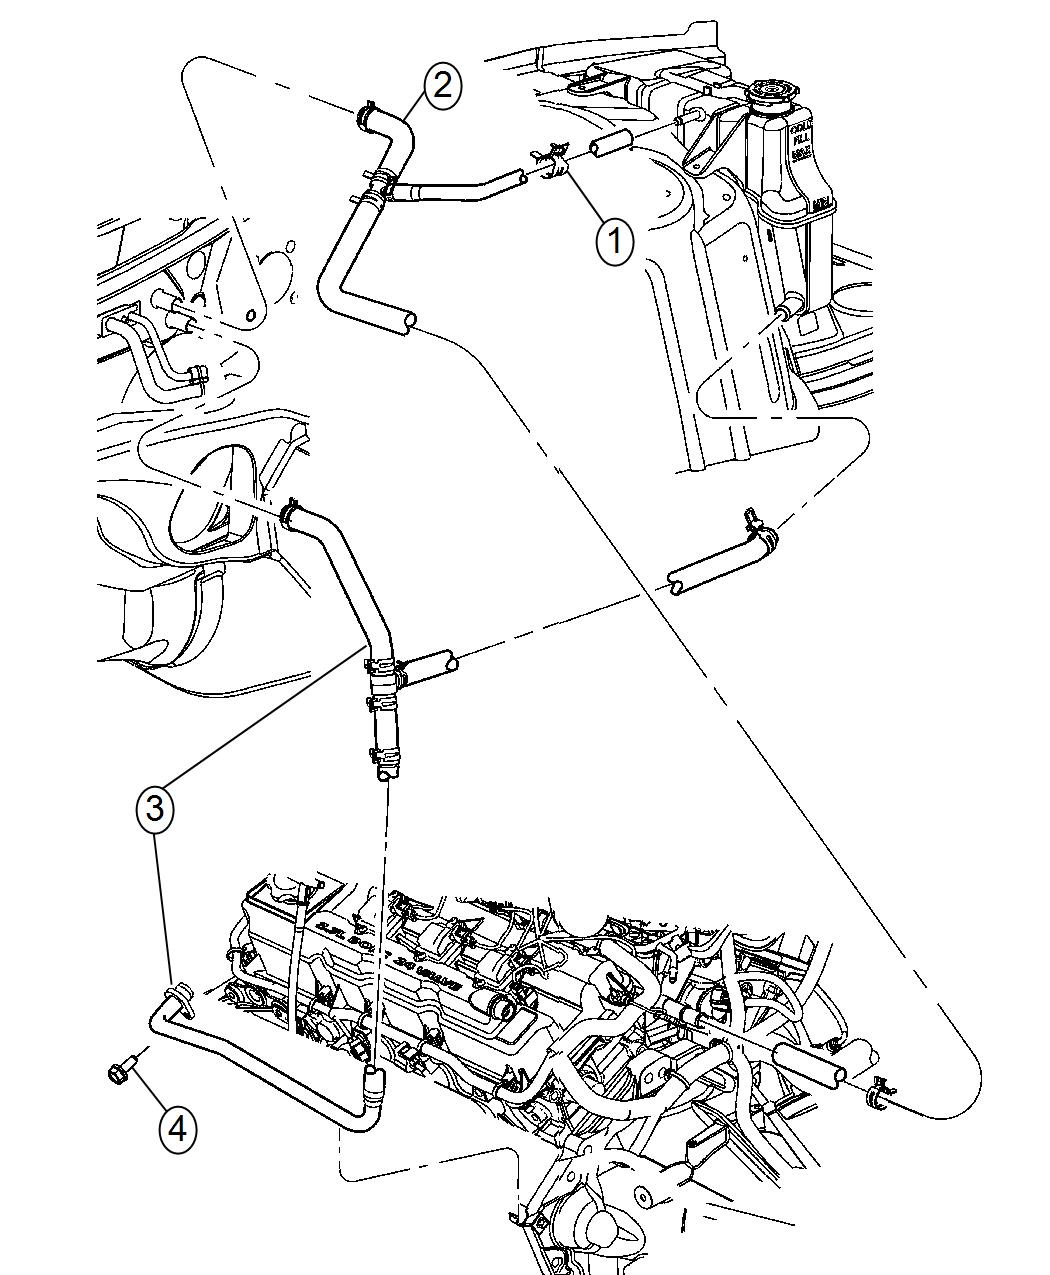 Dodge Magnum Used For Hose And Tube Heater Supply Bottle Coolant Plumbing